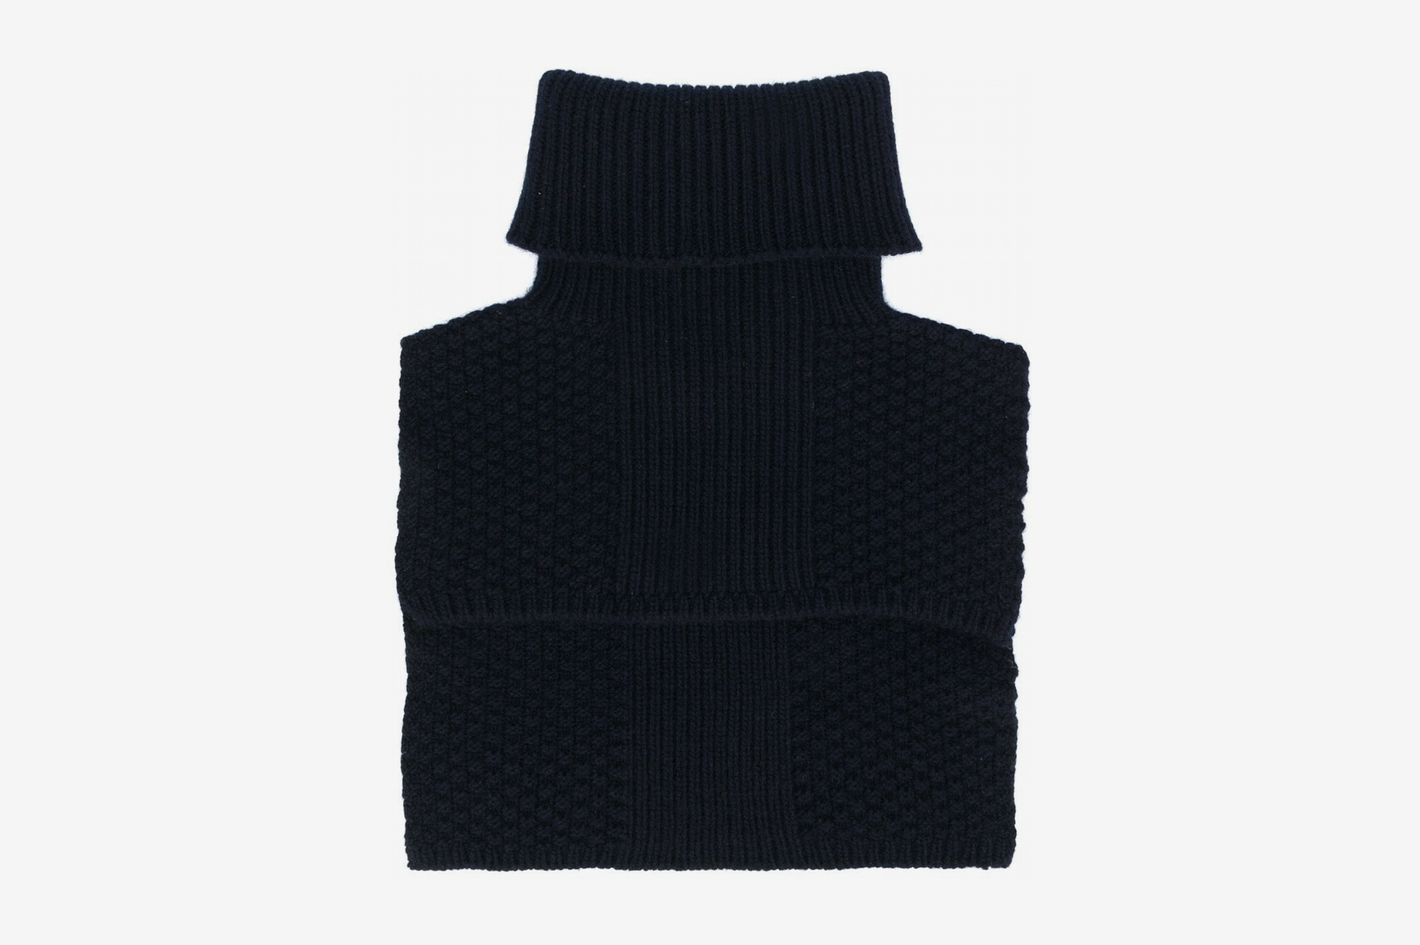 Holland & Holland Cashmere Knitted Roll Neck Collar